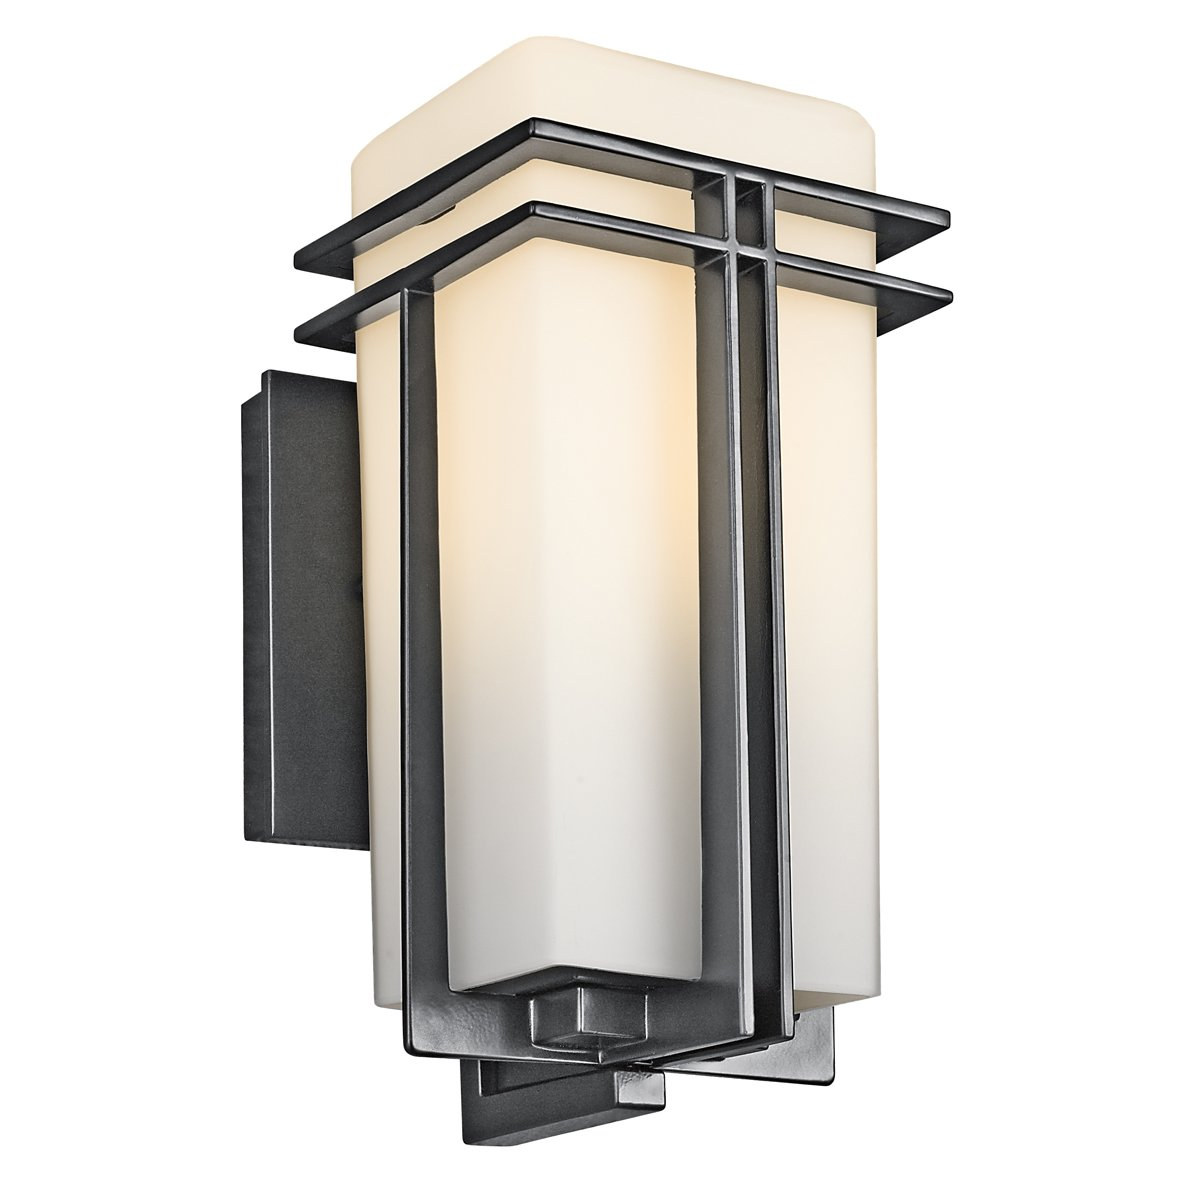 Kichler 49200BK One Light Outdoor Wall Mount   Wall Porch Lights    Amazon.com